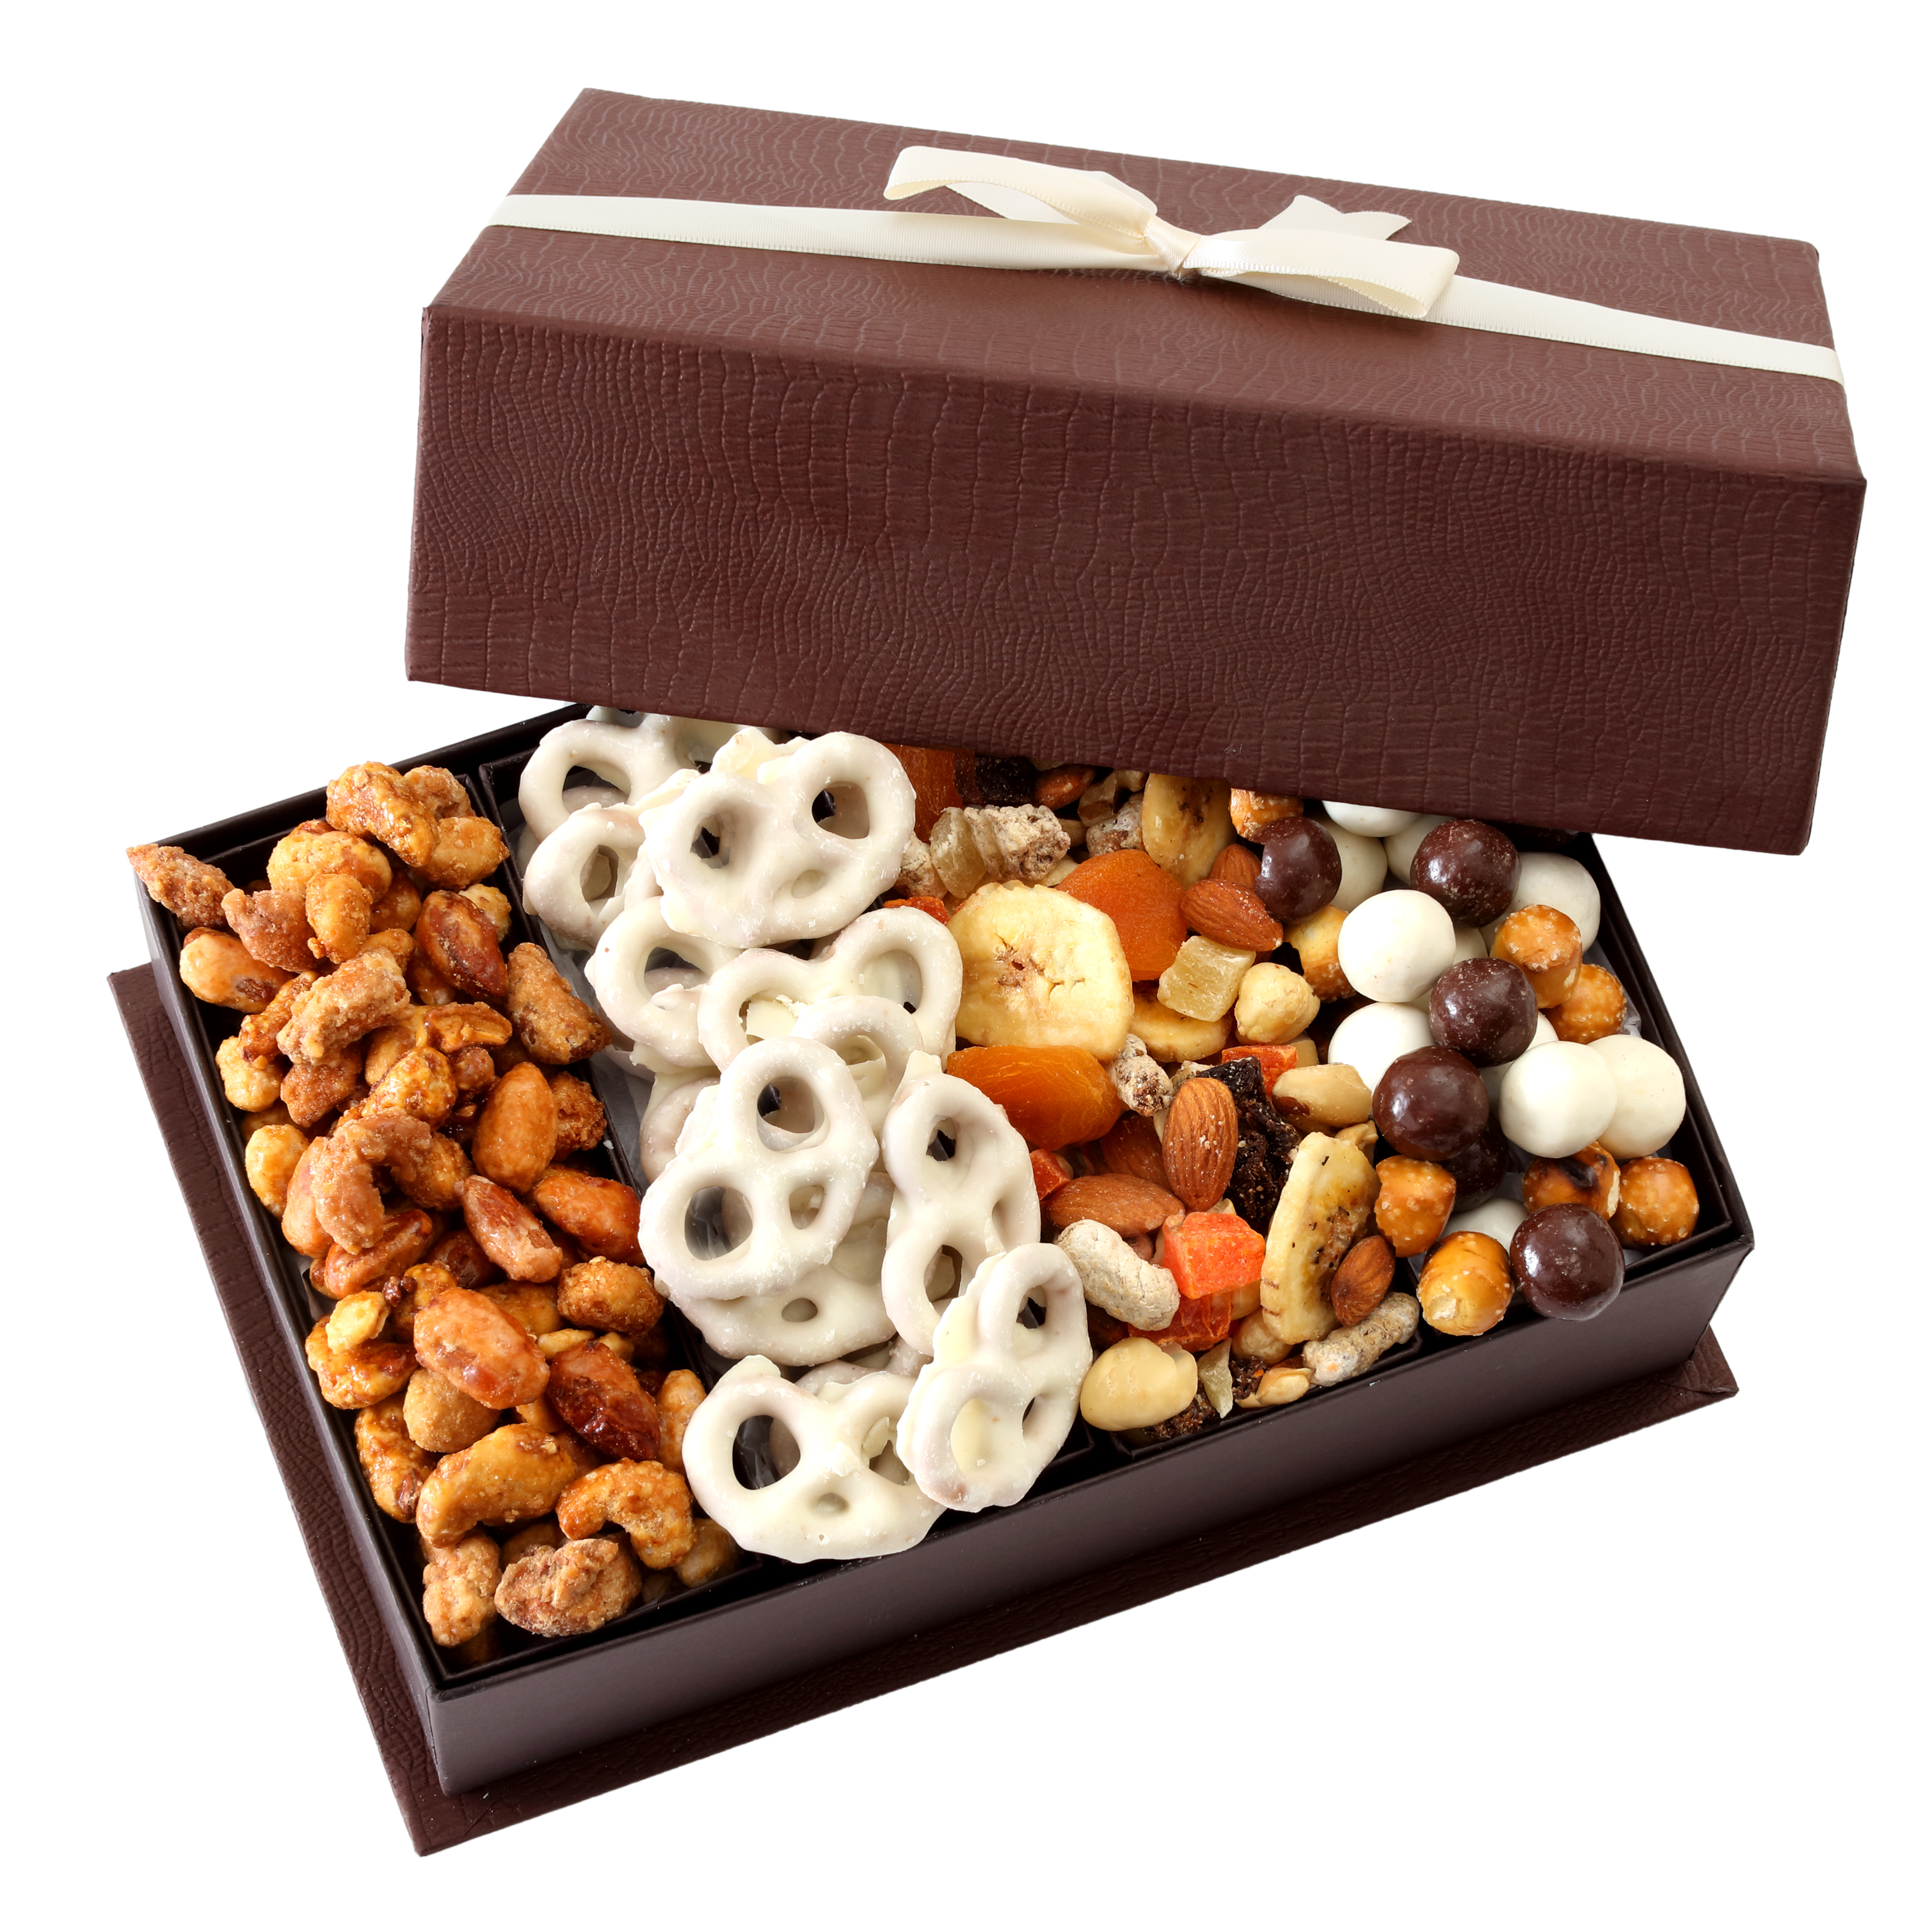 Broadway Basketeers Touch of Class Gourmet Fruit and Nut Gift Basket